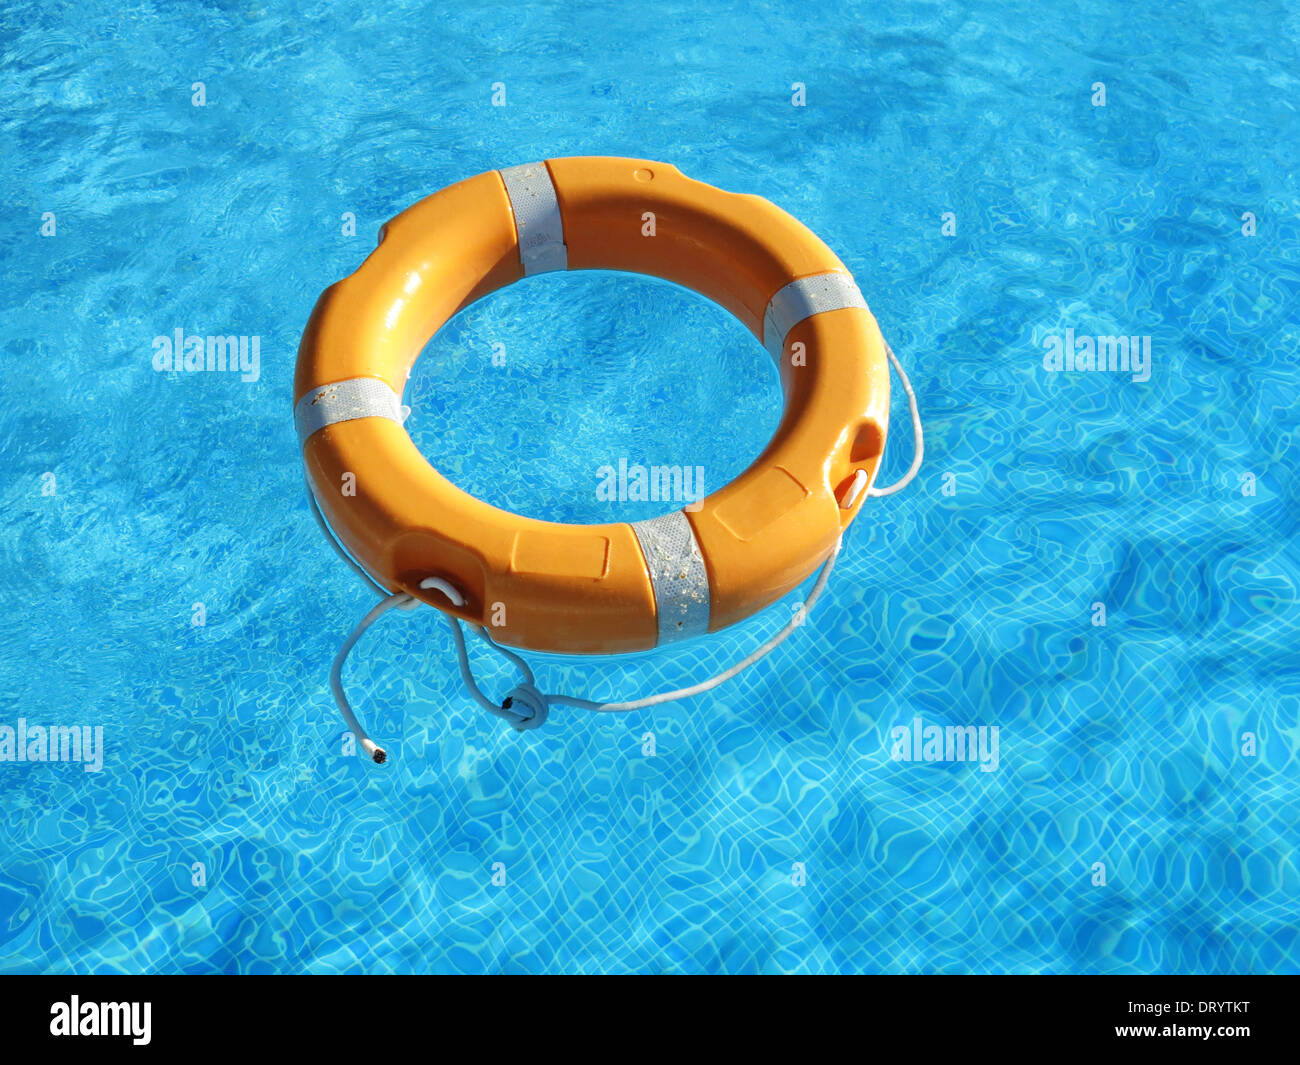 Lifebelt in swimming pool - Stock Image